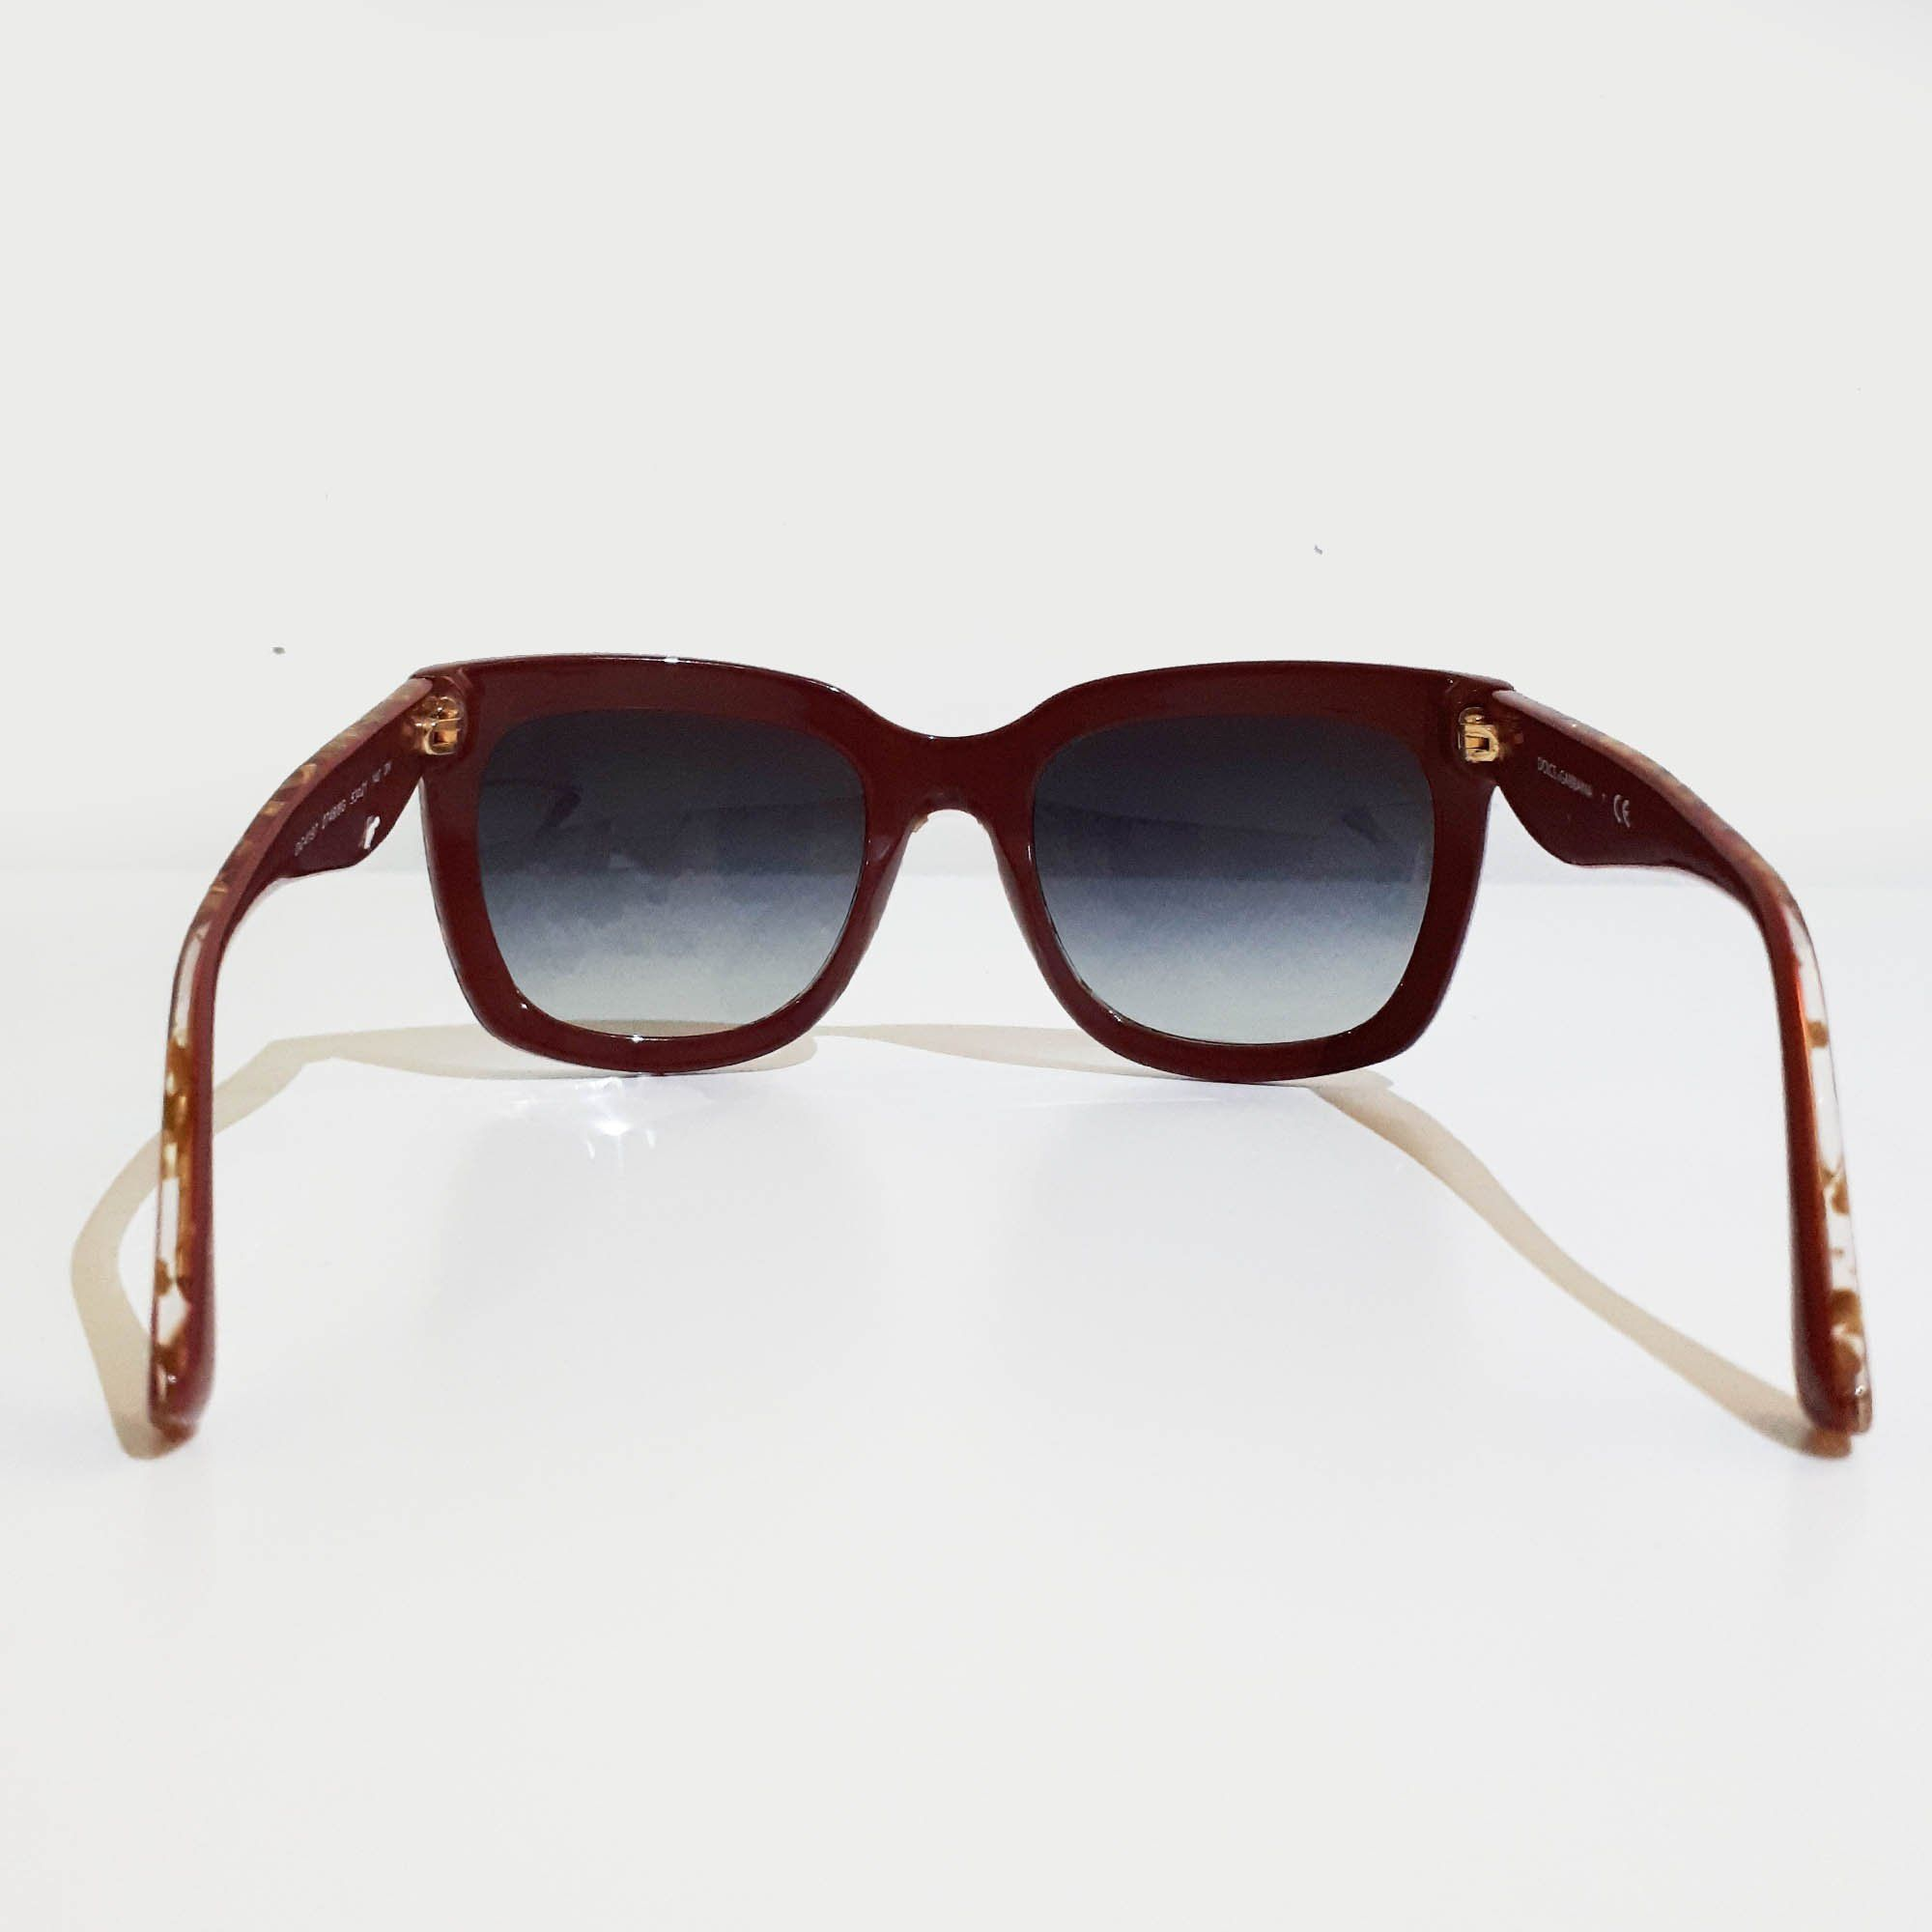 018b515db3f9 Dolce And Gabbana Sunglasses Online Australia